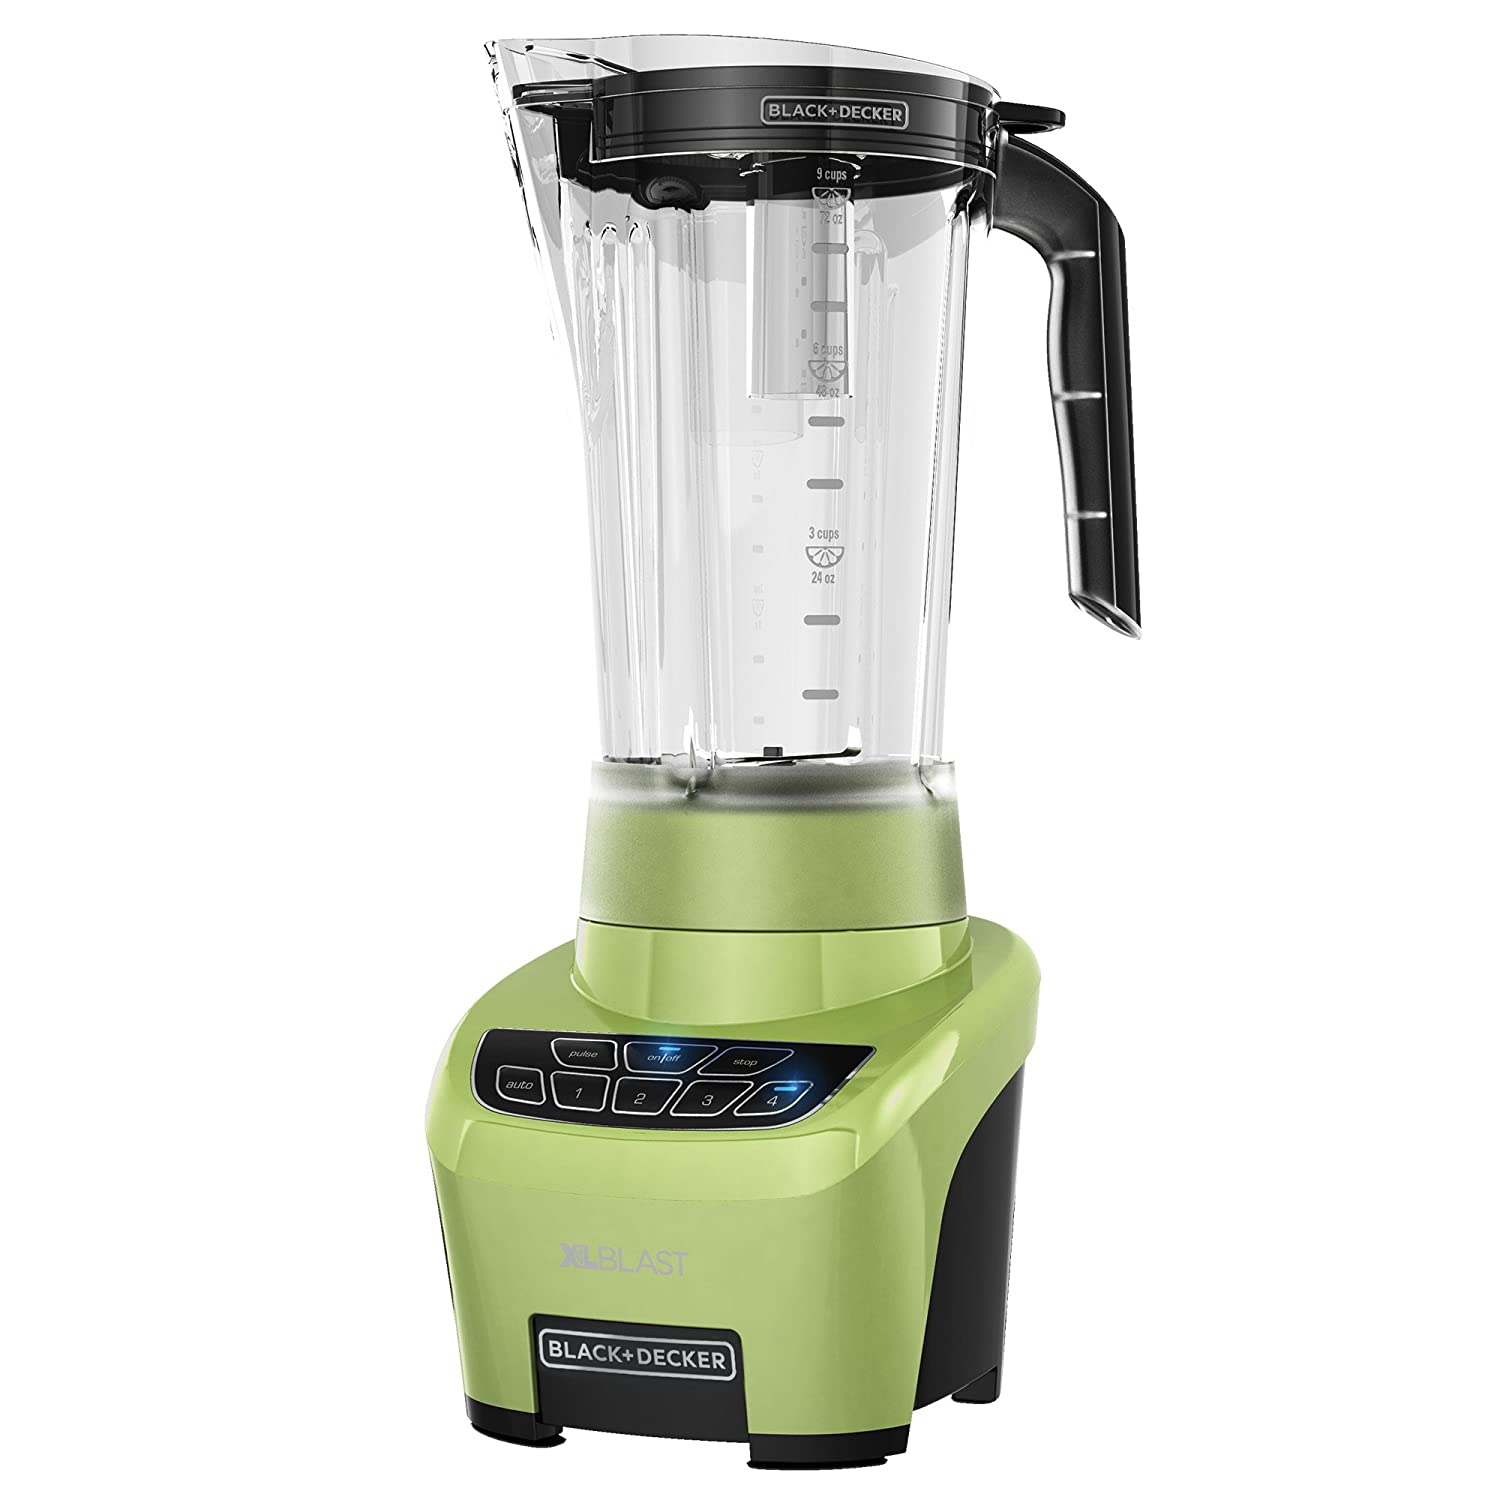 BLACK+DECKER XL Blast Drink Machine, Lime Green, BL4000L